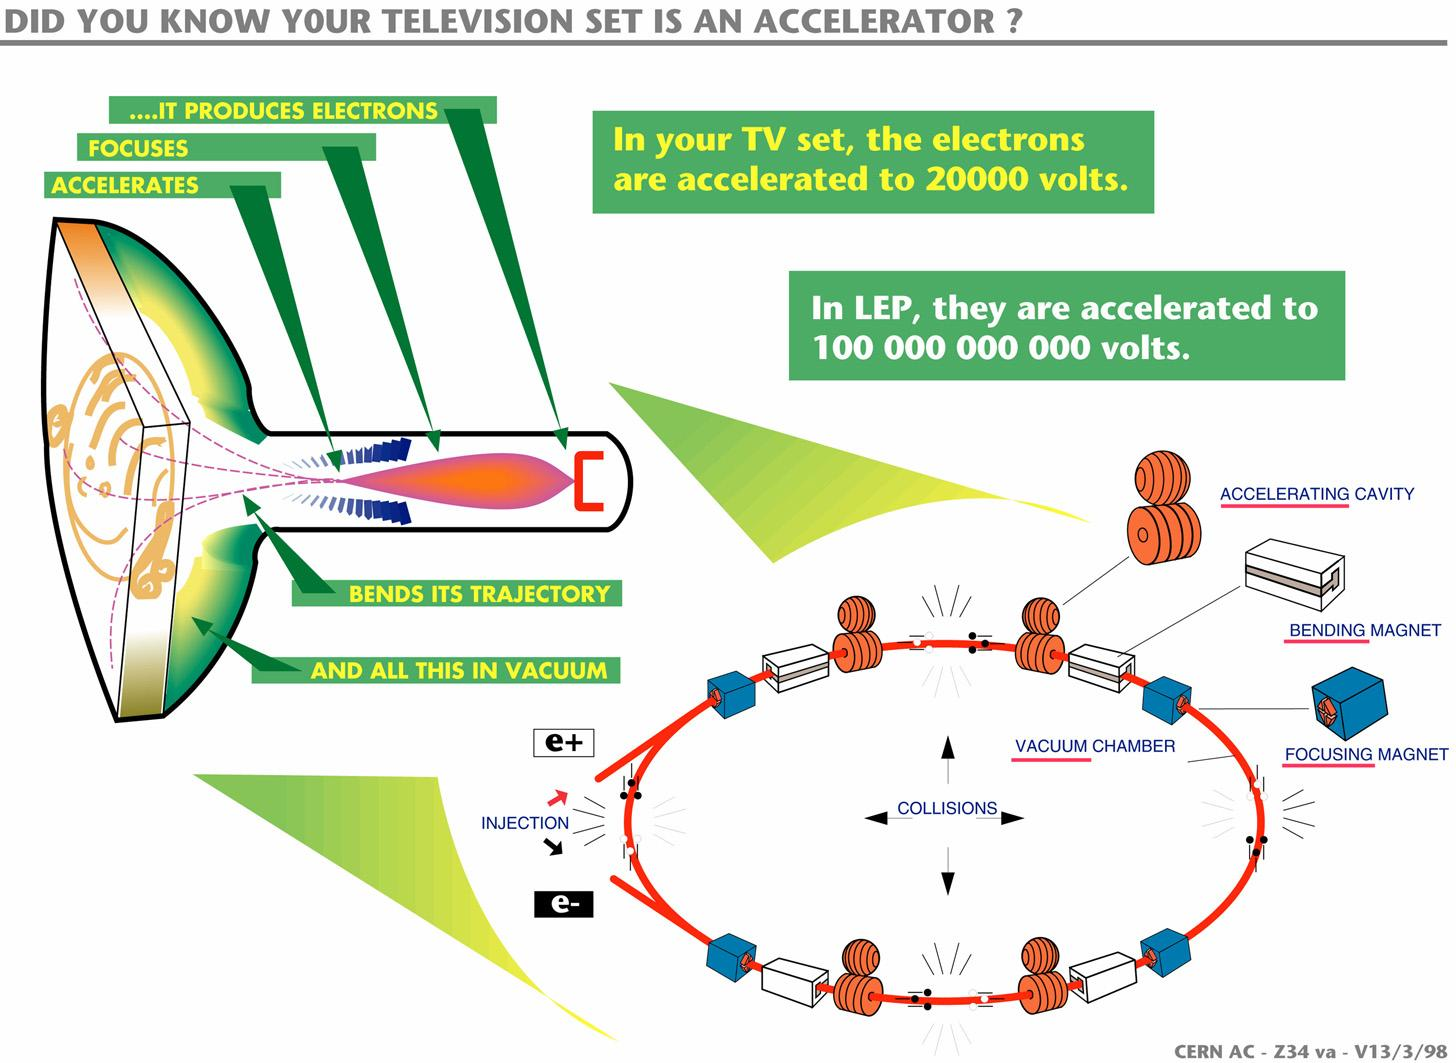 Comparative description of the electrons accelerating in a TV set and in the LEP